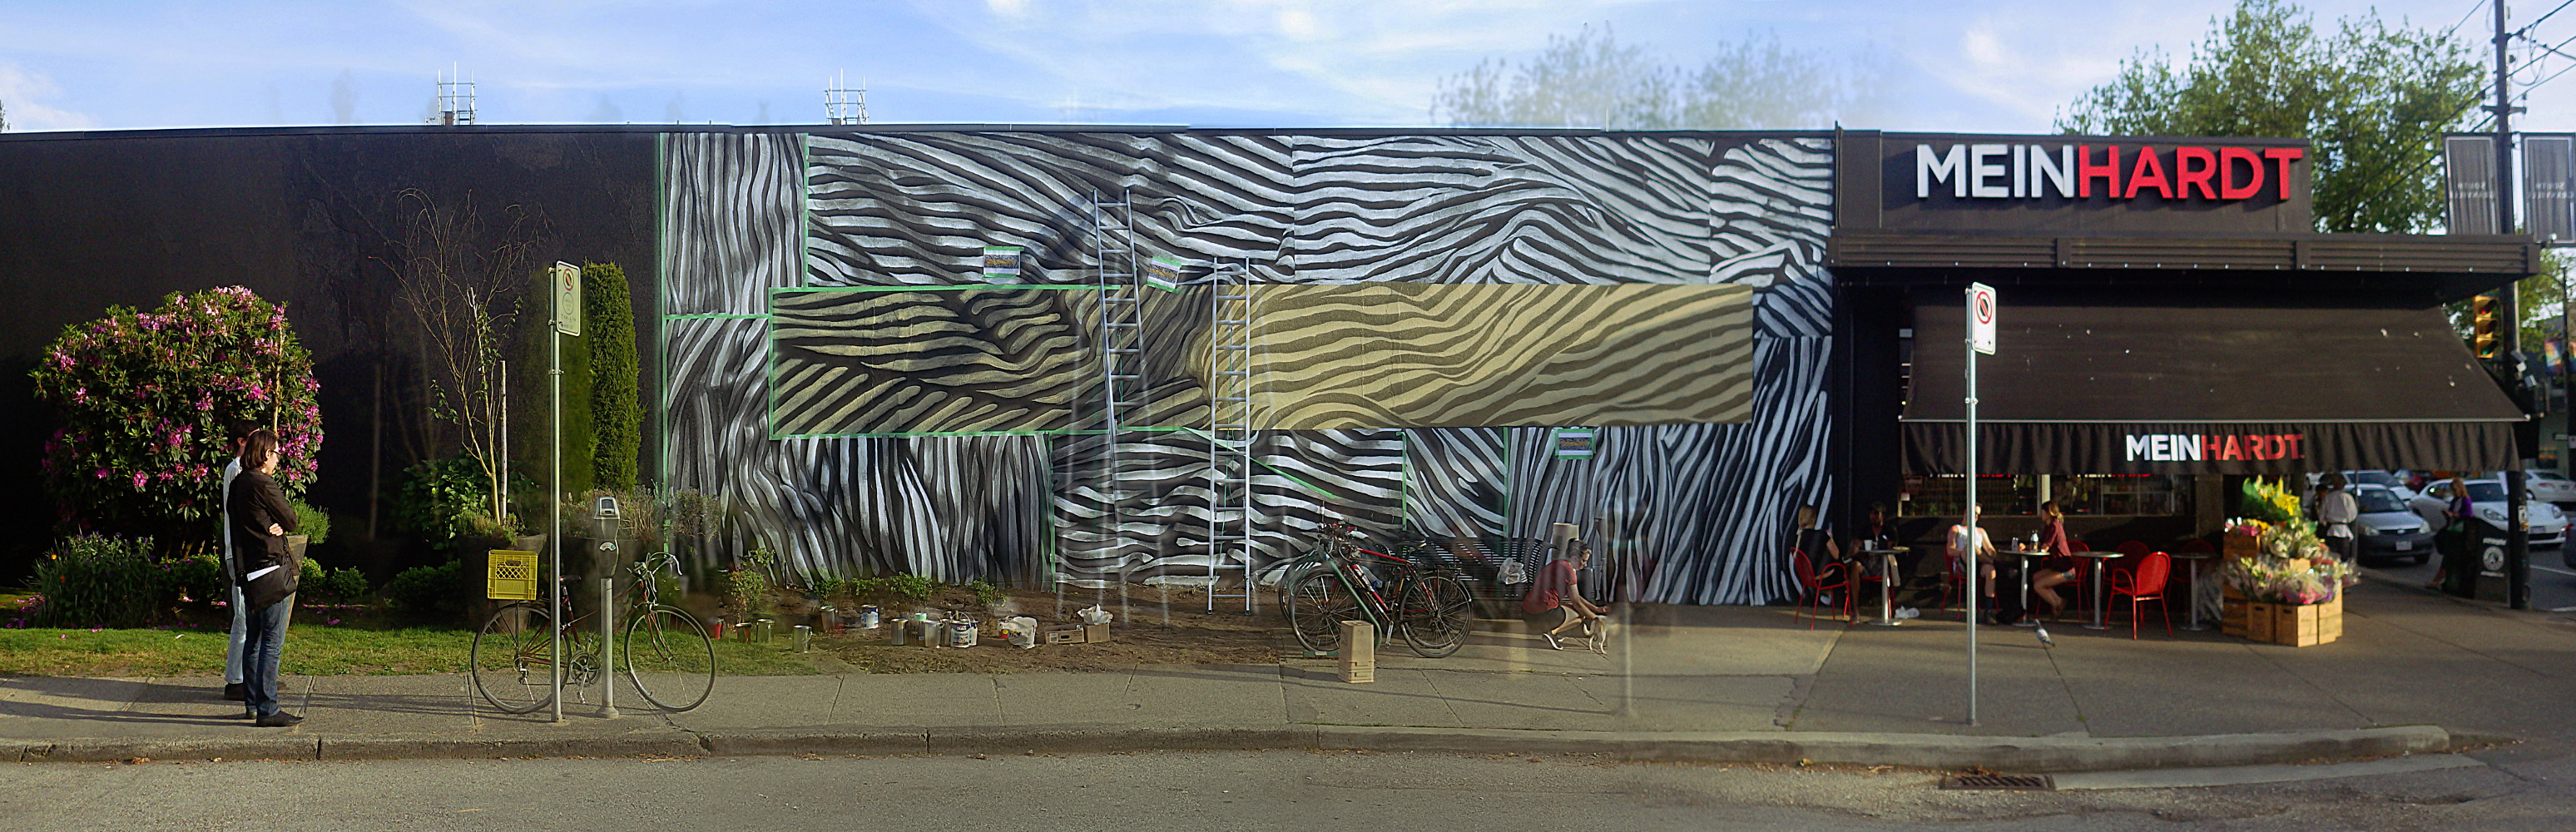 Stanley-Q-Woodvine-South-Granville-meinhardt-mural-01-pano-2017-jun-06